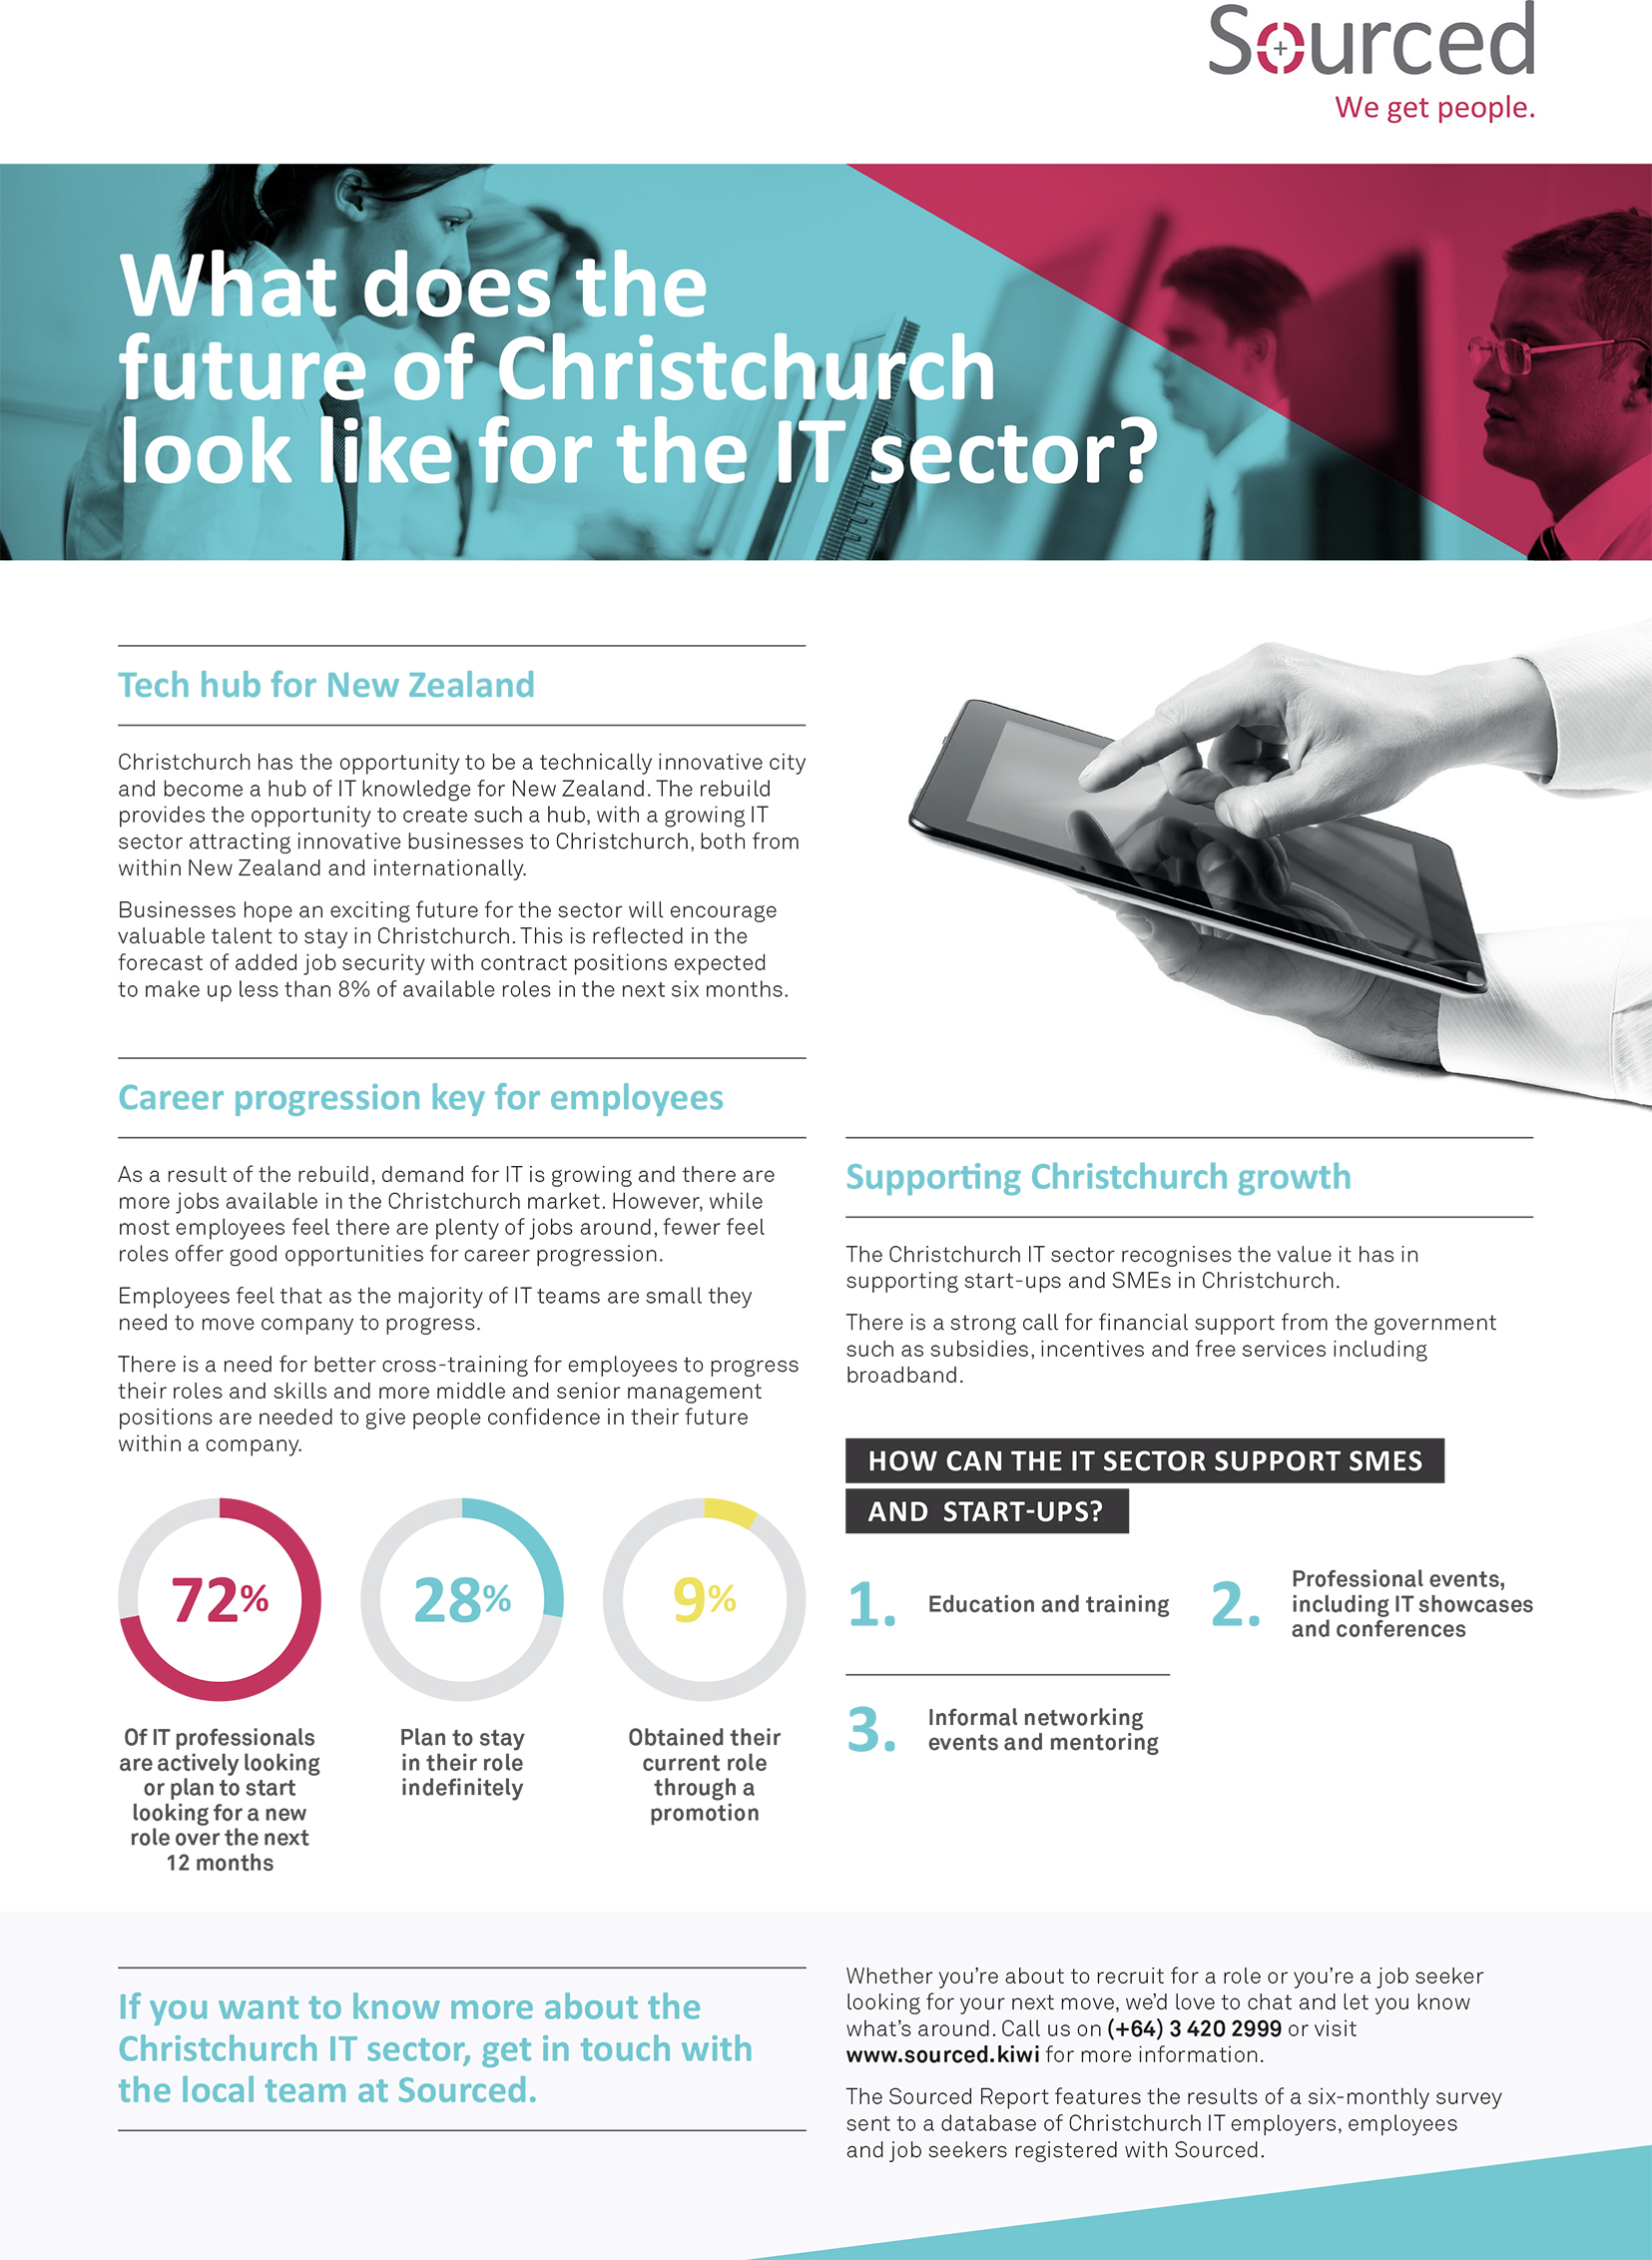 Sourced Report Page 3 | August 2014 Sourced Report Page 1 | August 2014 Infographic